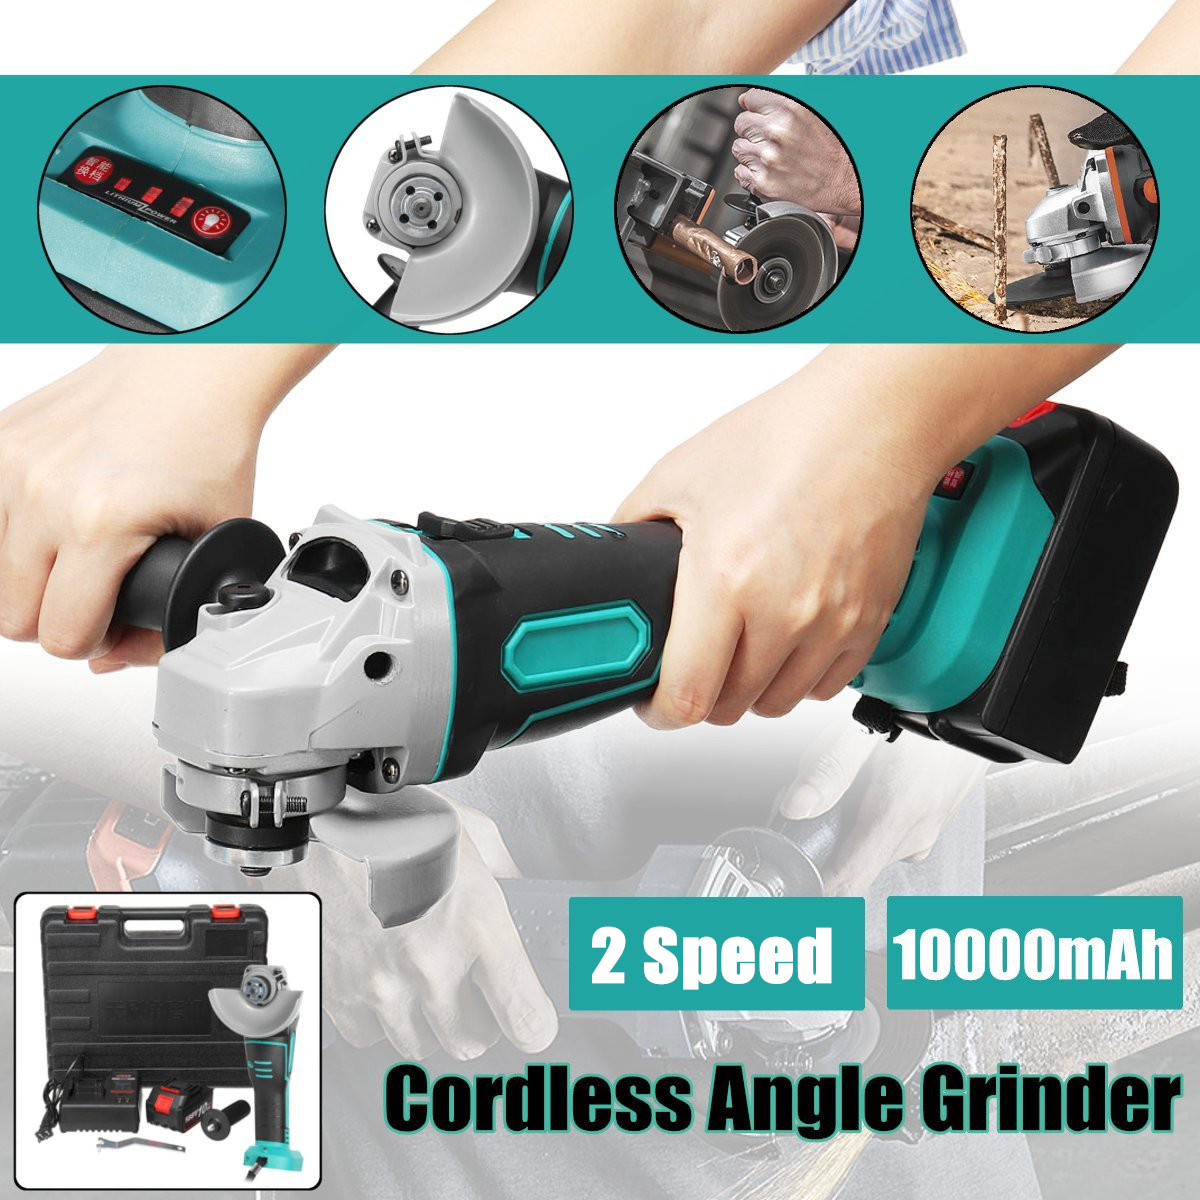 21V Cordless Angle Grinder 10000mAh Electric Angle Grinding Tools Power Grinder 8000RPM